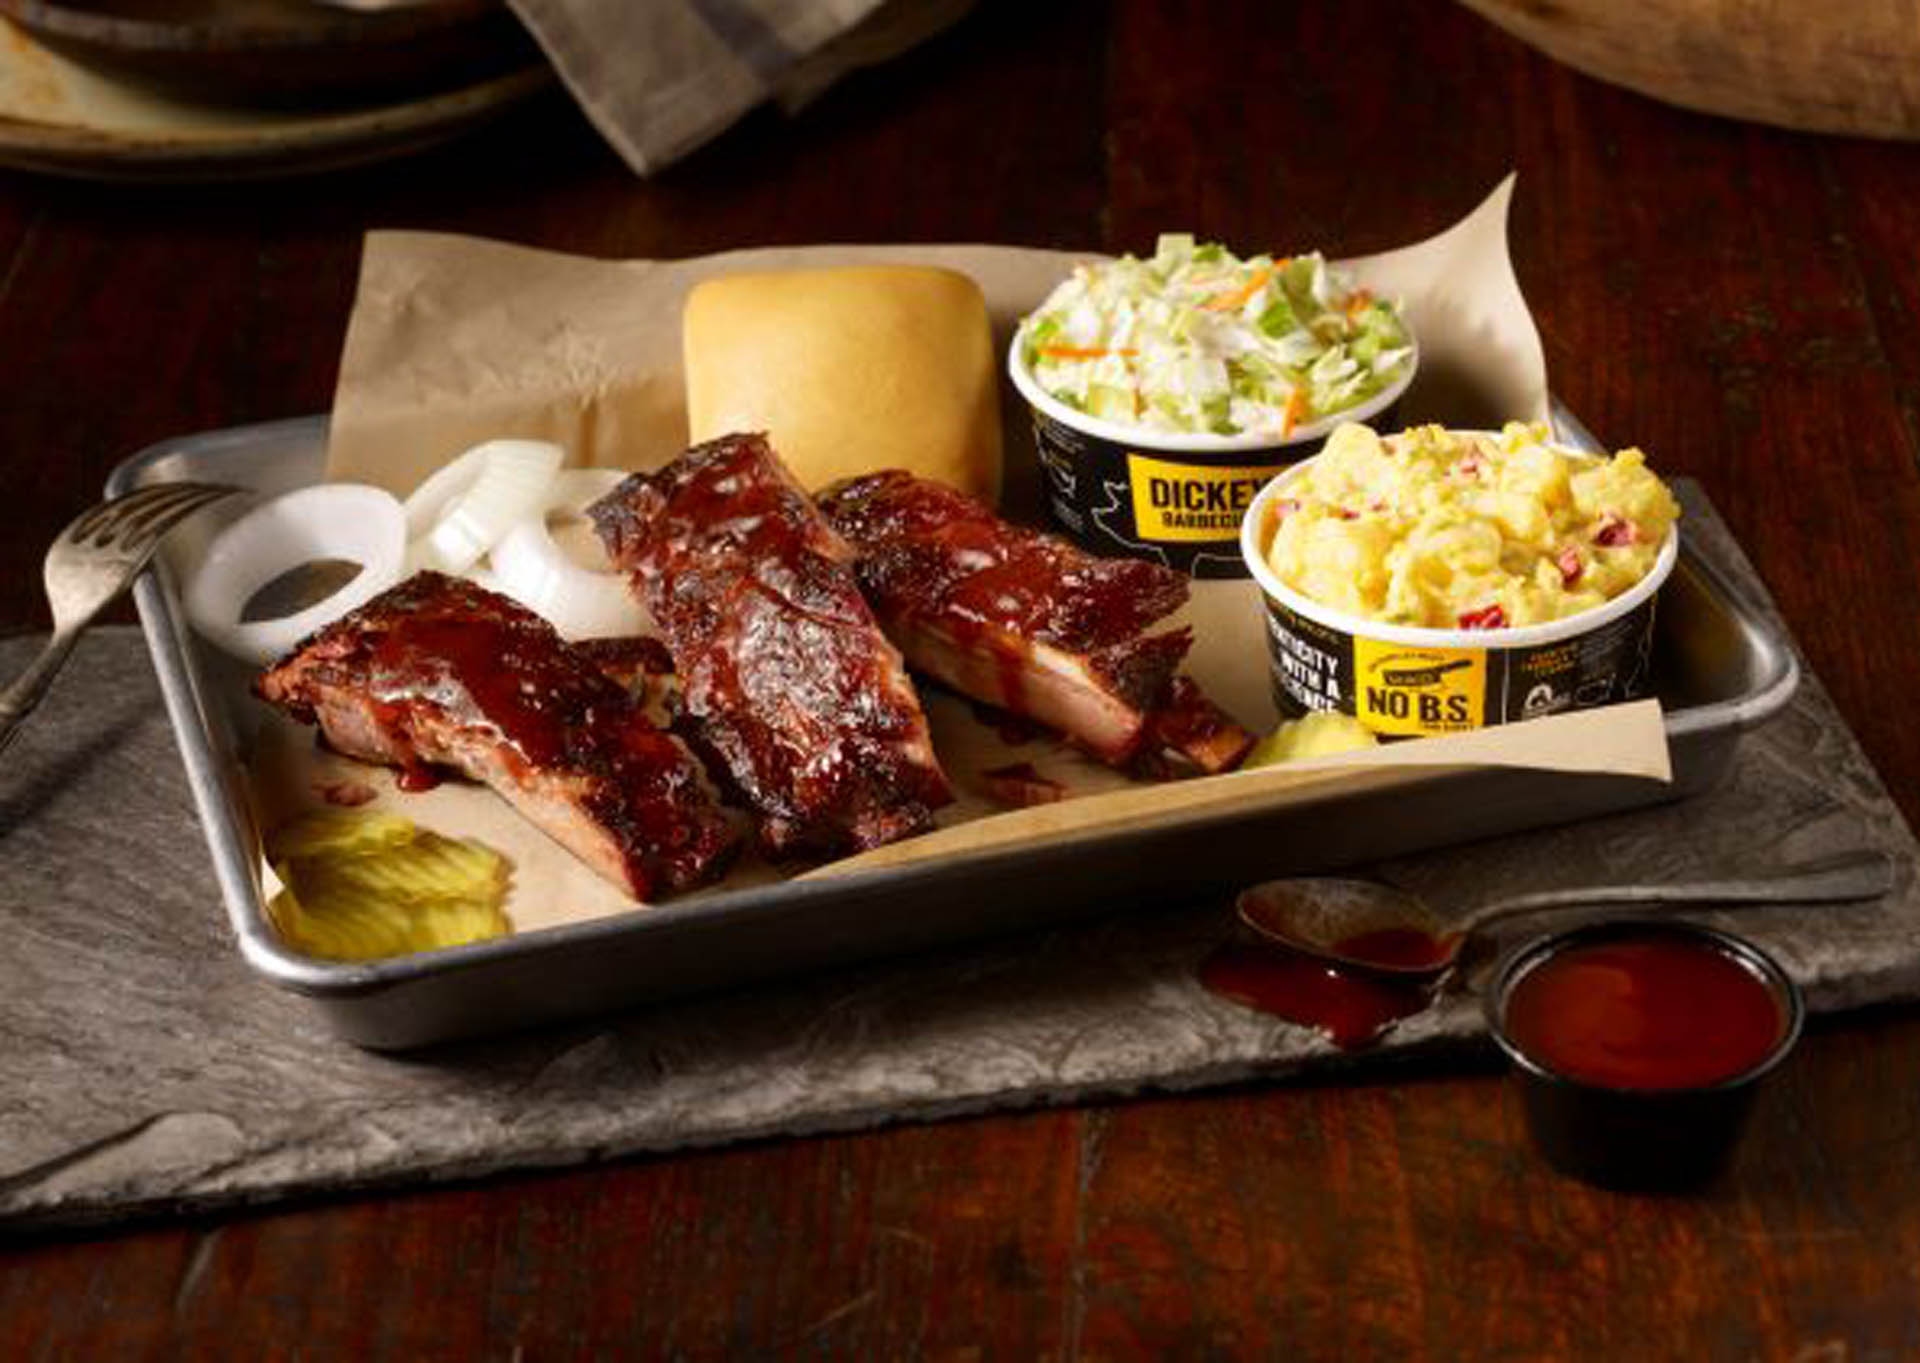 Franchising: Dickey's Barbecue Pit Owner Brings New Location to Pearland, TX